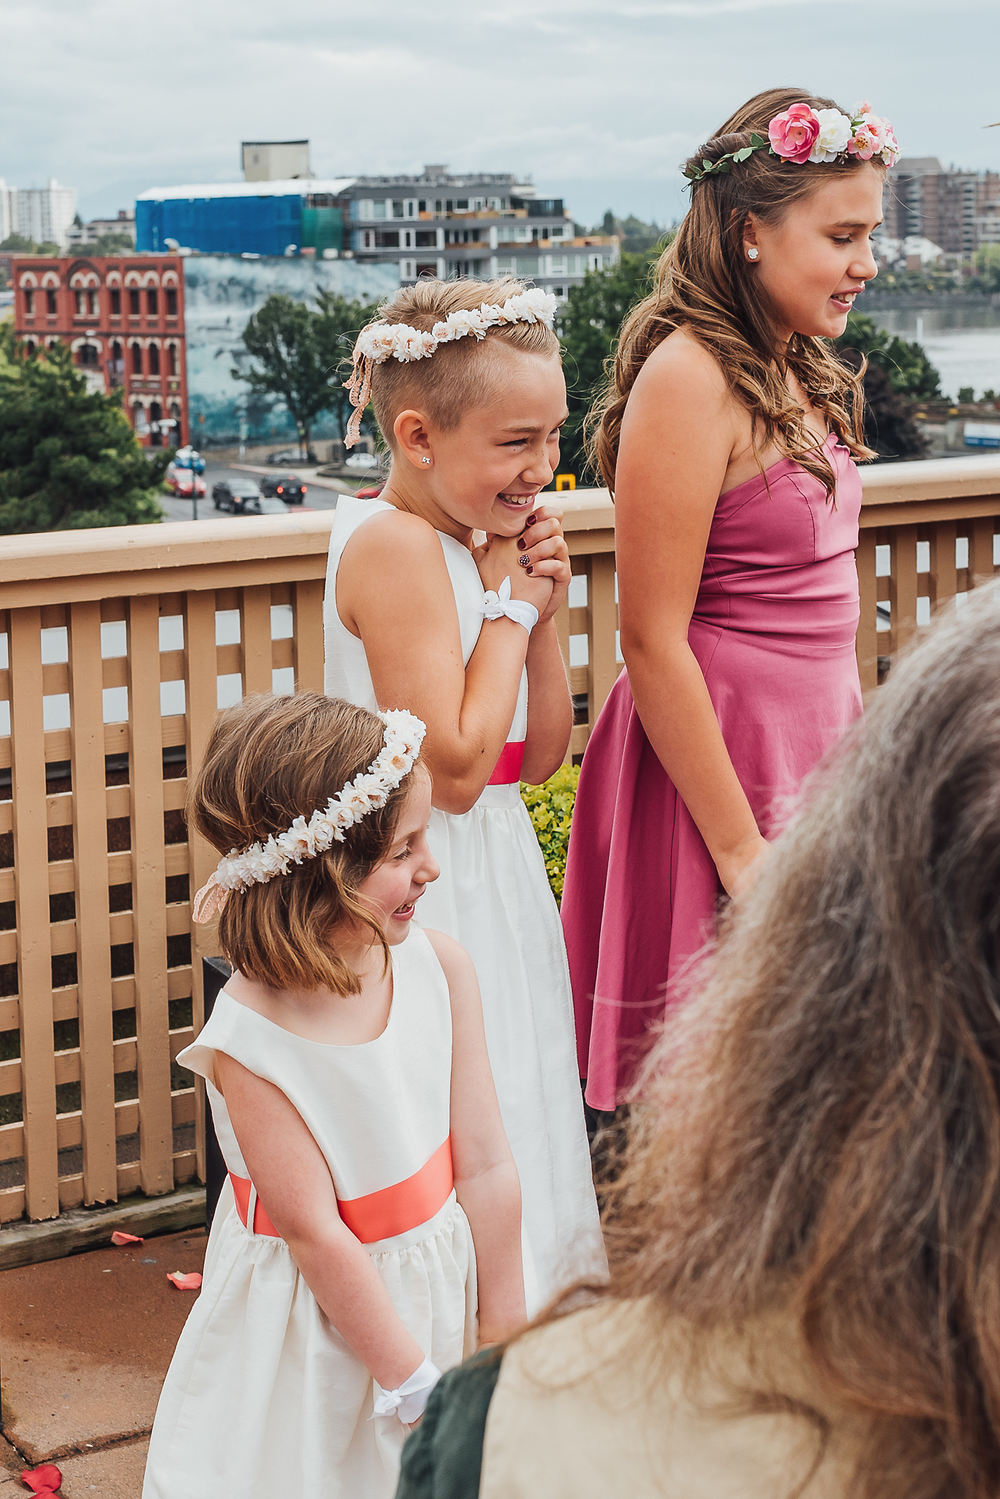 Lily_and_Lane_Childrens_Photographer_Victoria_BC-43.jpg